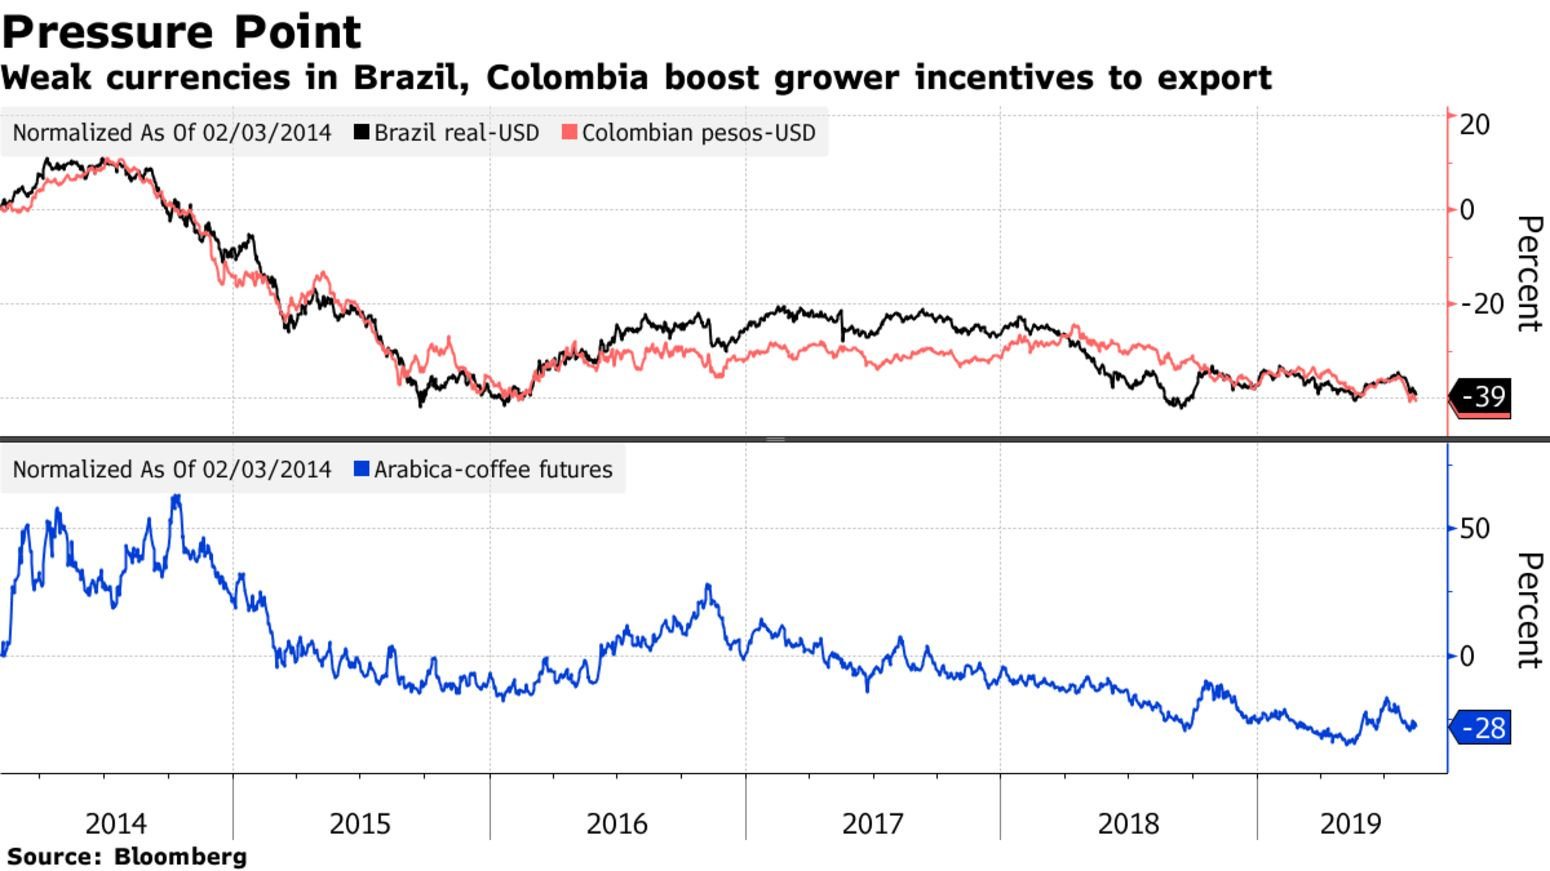 Weak currencies in Brazil, Colombia boost grower incentives to export